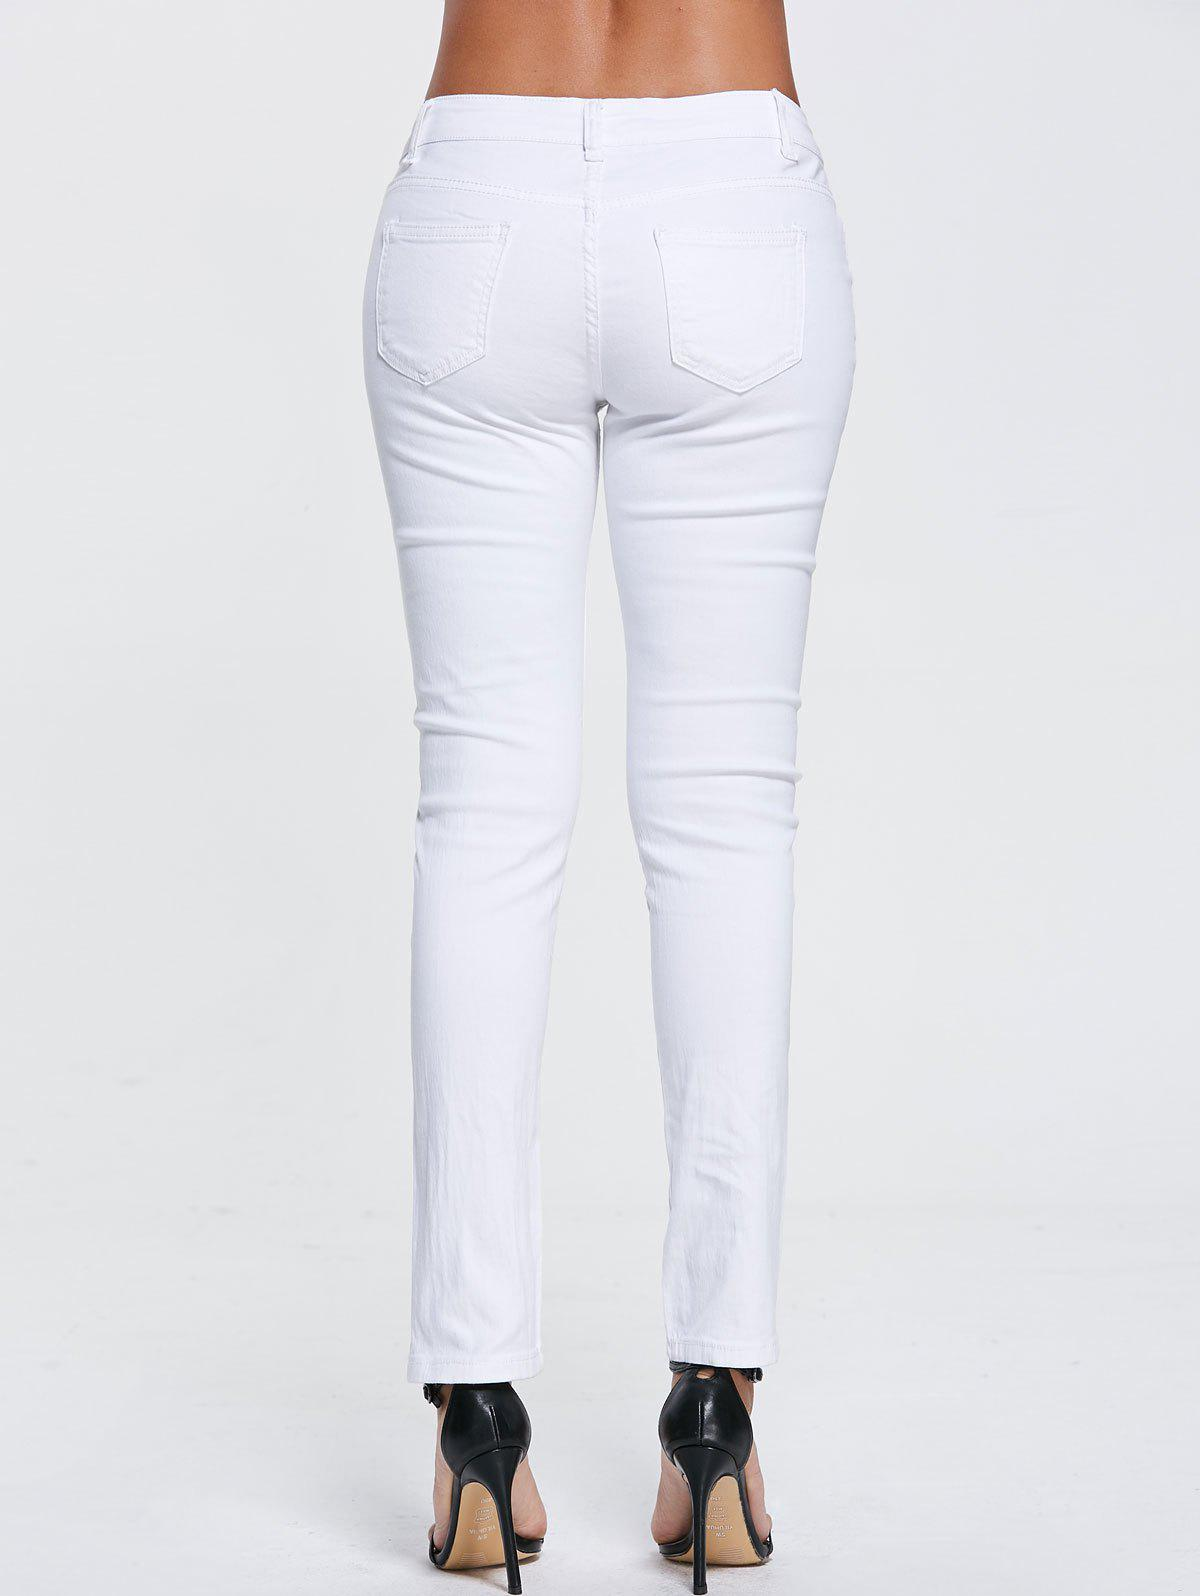 High Waisted Floral Embroidered Skinny Ripped Jeans - WHITE XL